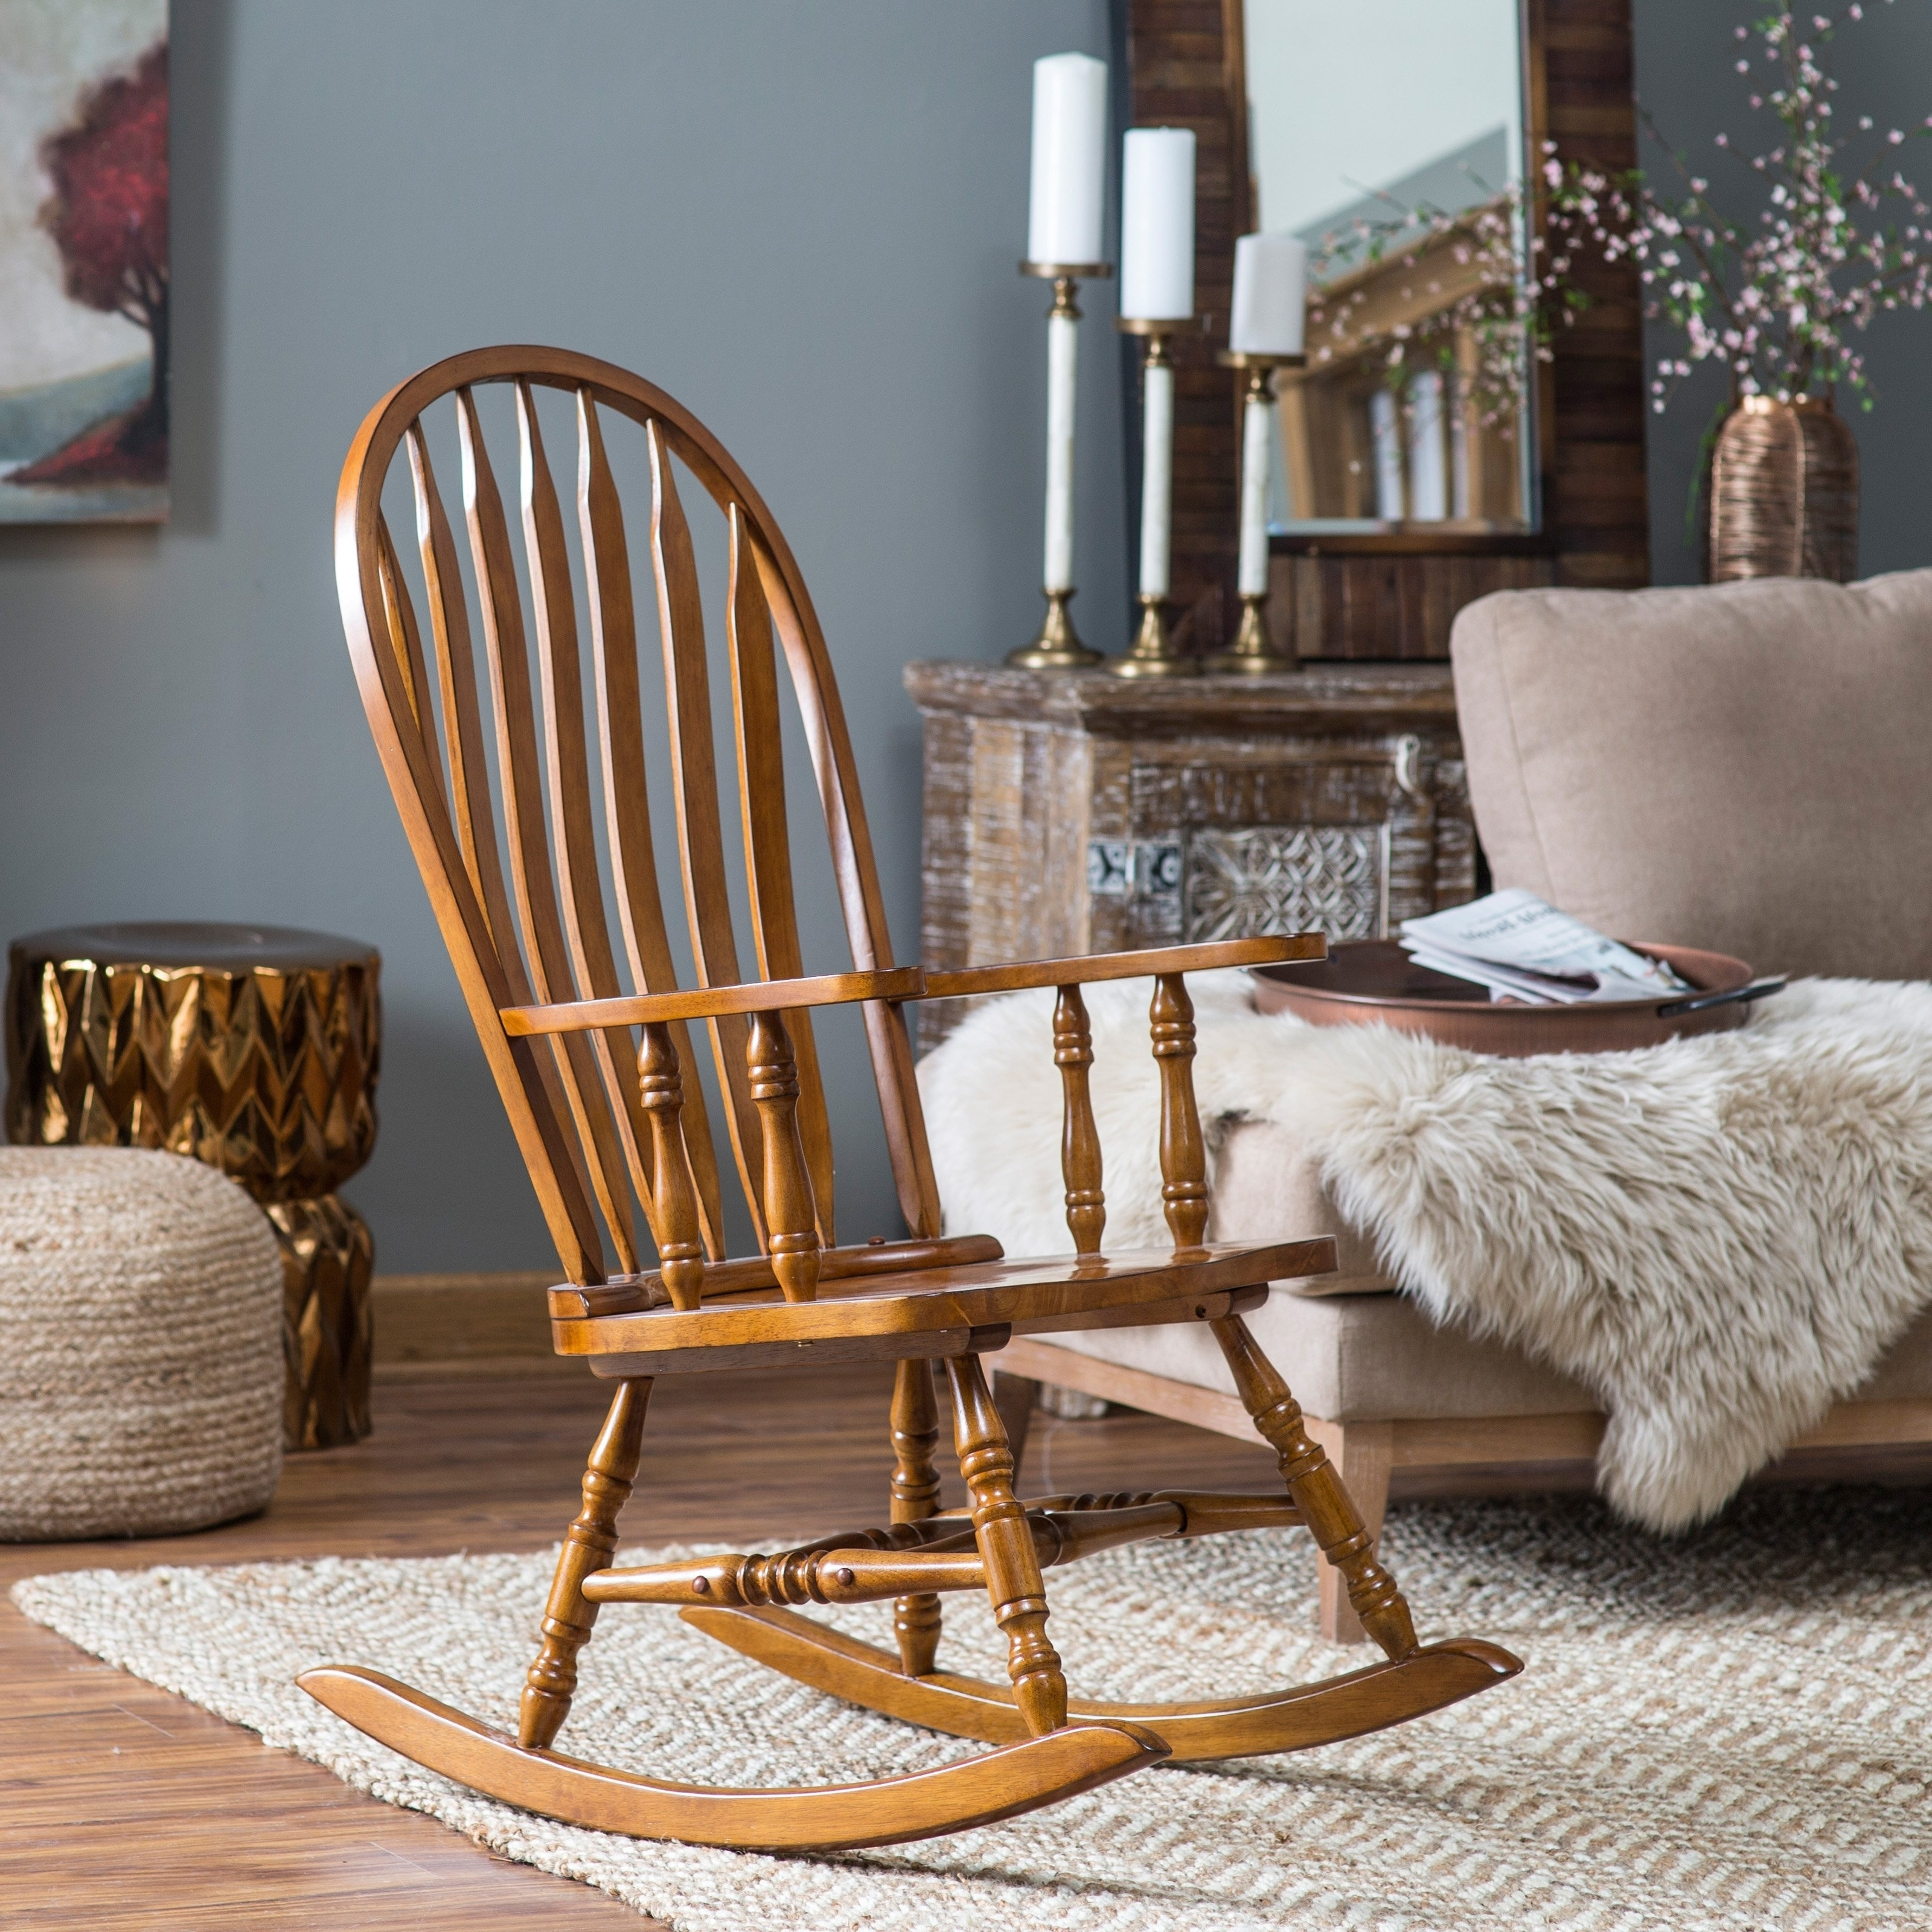 Living Room Rocking Chair Elegant Benefit Rocking Chairs For 2017 Rocking Chairs For Living Room (View 9 of 15)